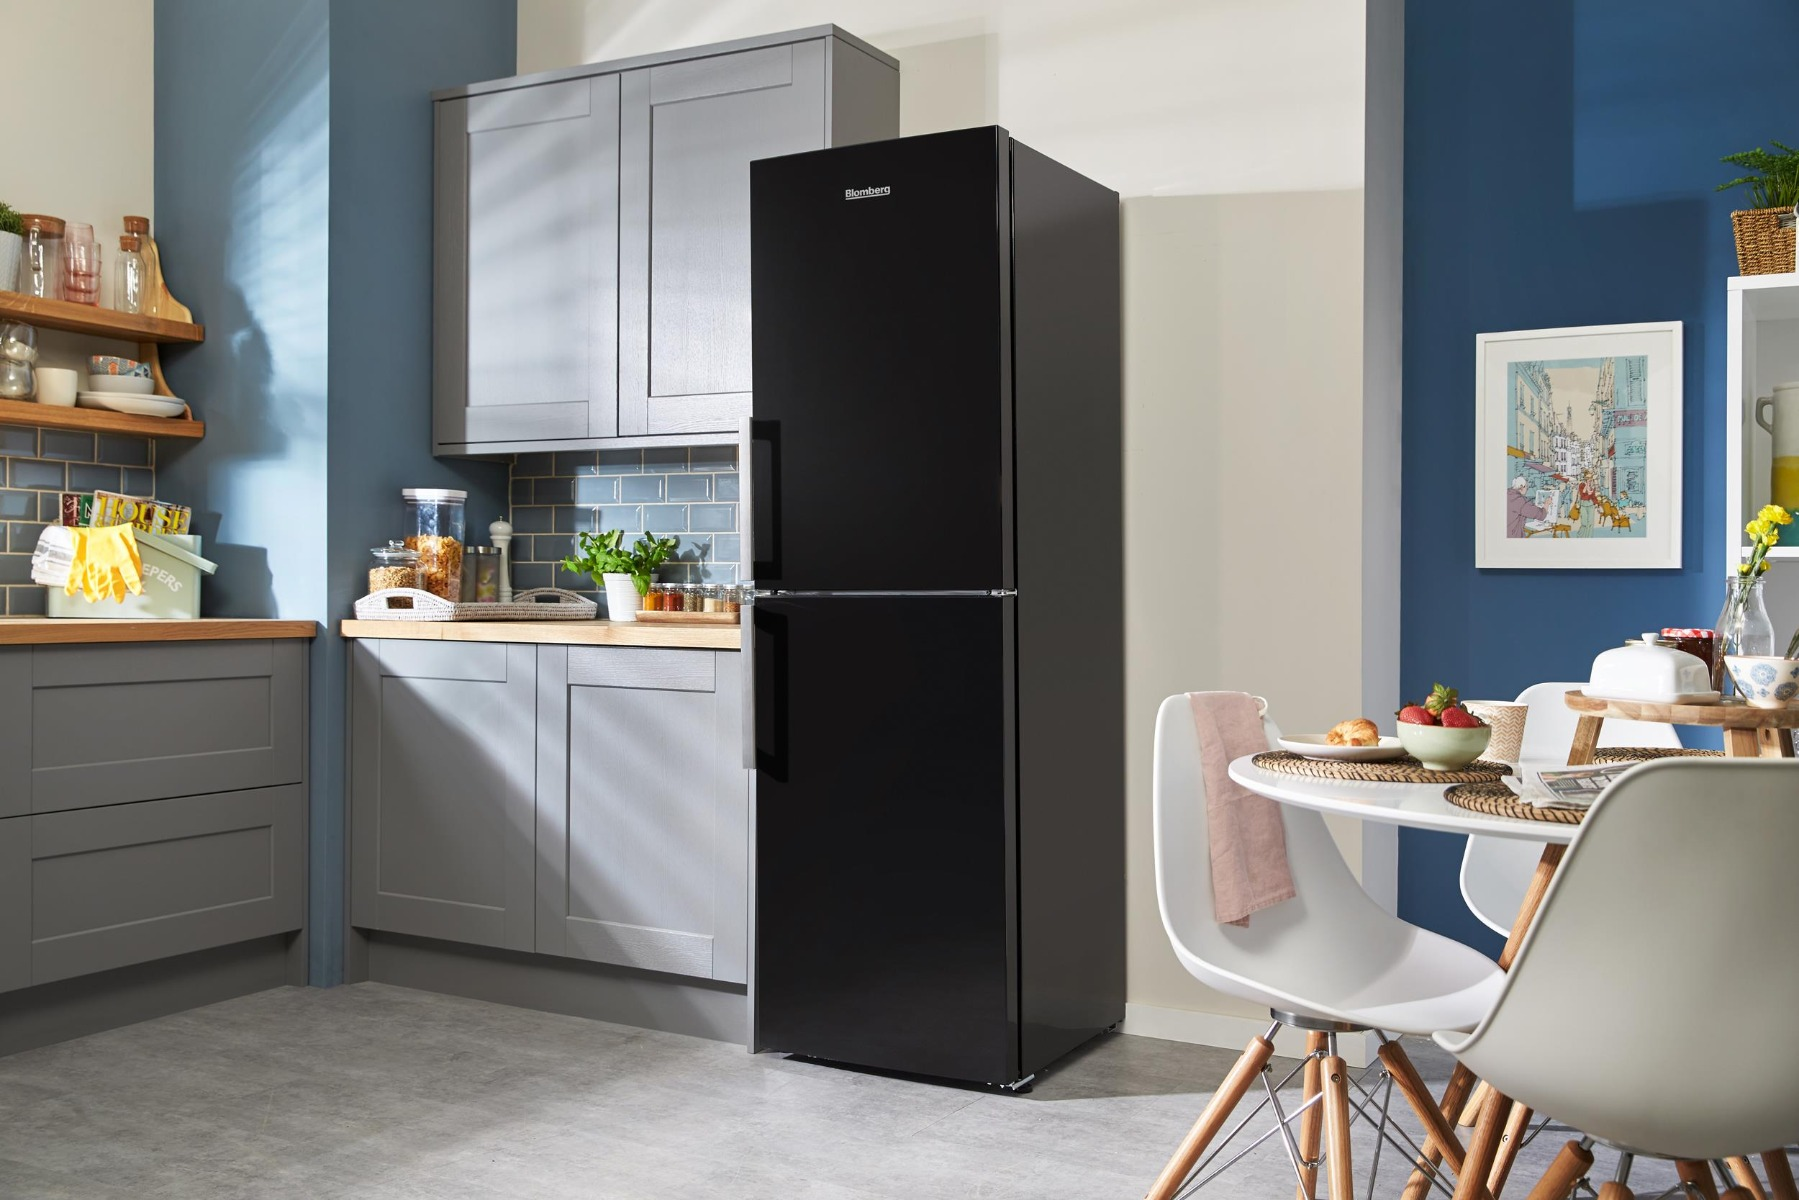 Blomberg Fridge Freezer